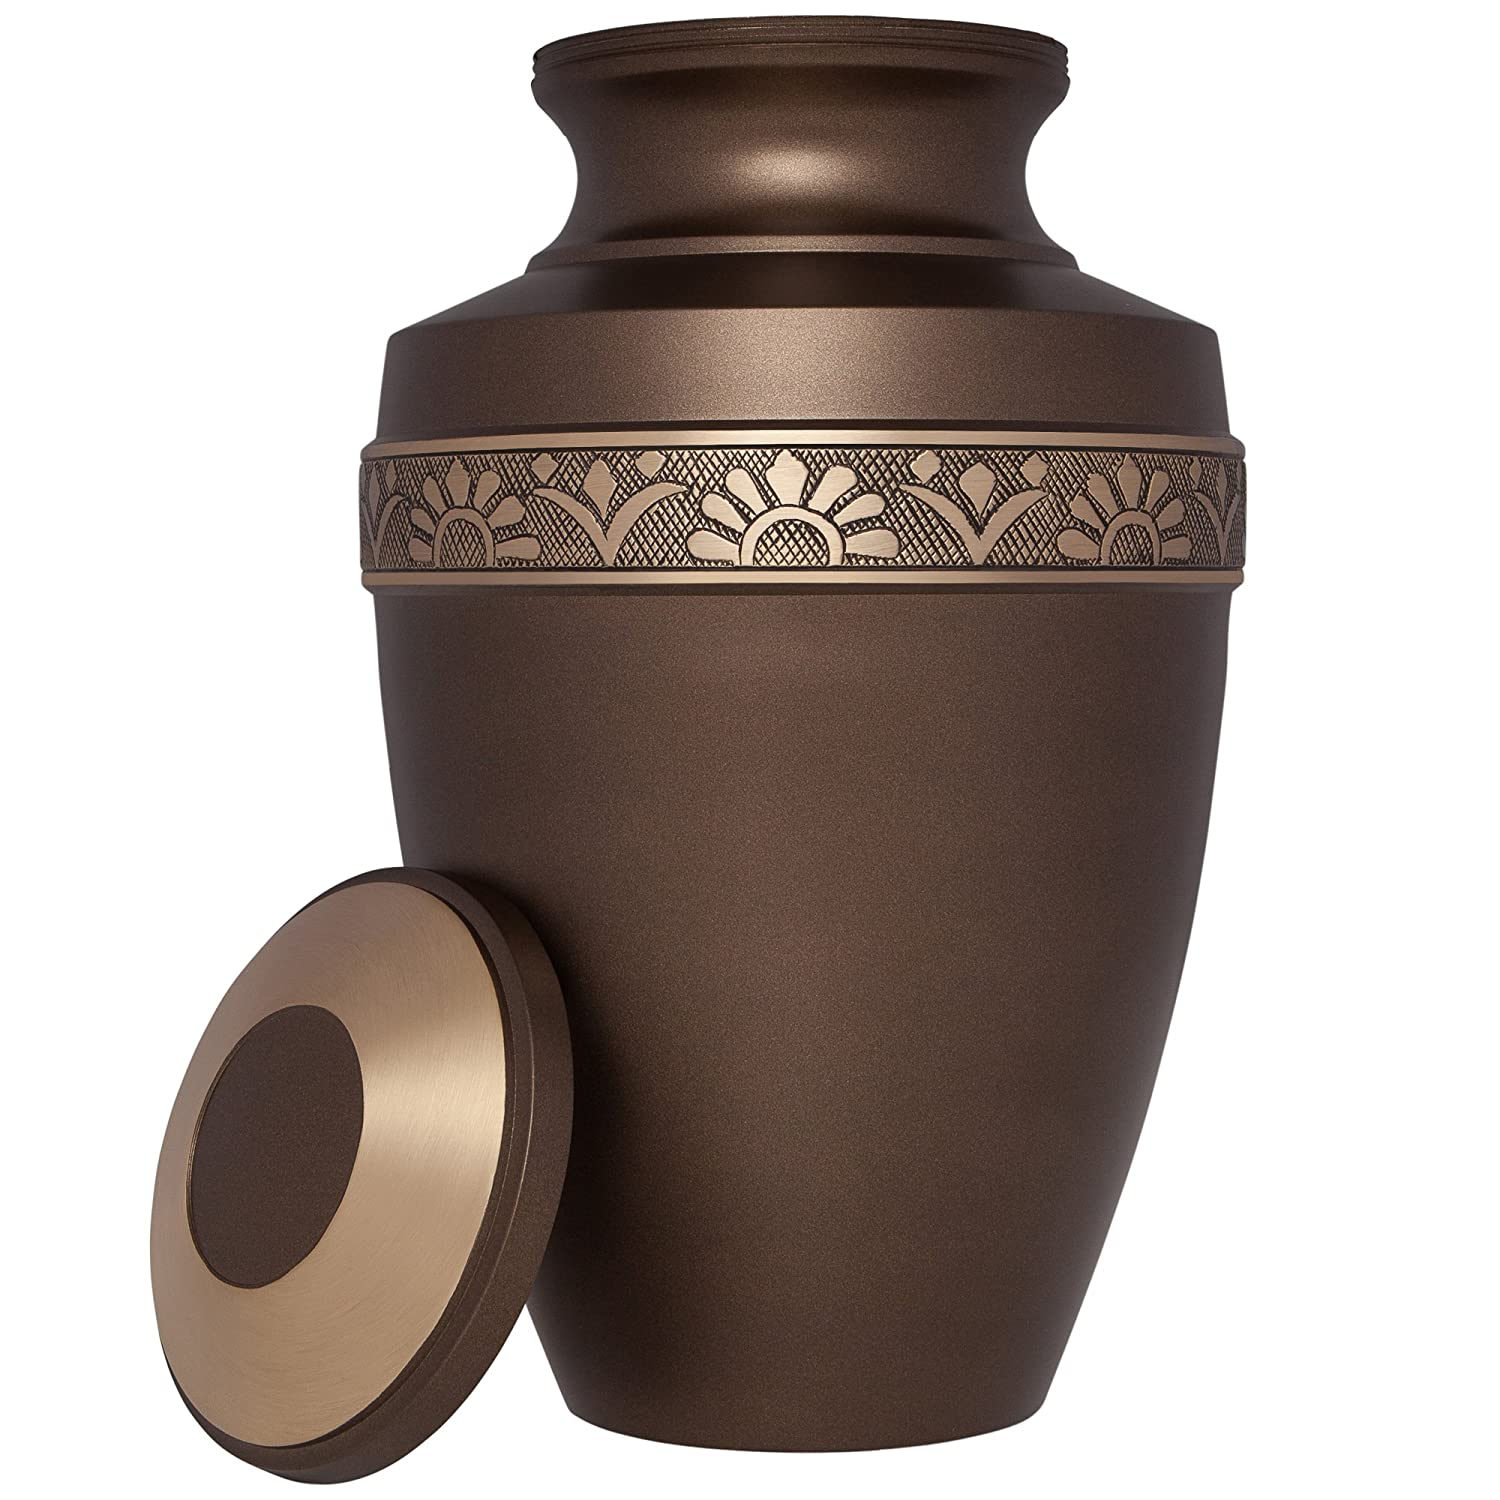 Brown Funeral Urn by Liliane Memorials – Cremation Urn for Human Ashes – Hand Made in Brass -Suitable for Cemetery Burial or Niche- Large Size fits remains of Adults up to 200 lbs- D Anvers Brun Model